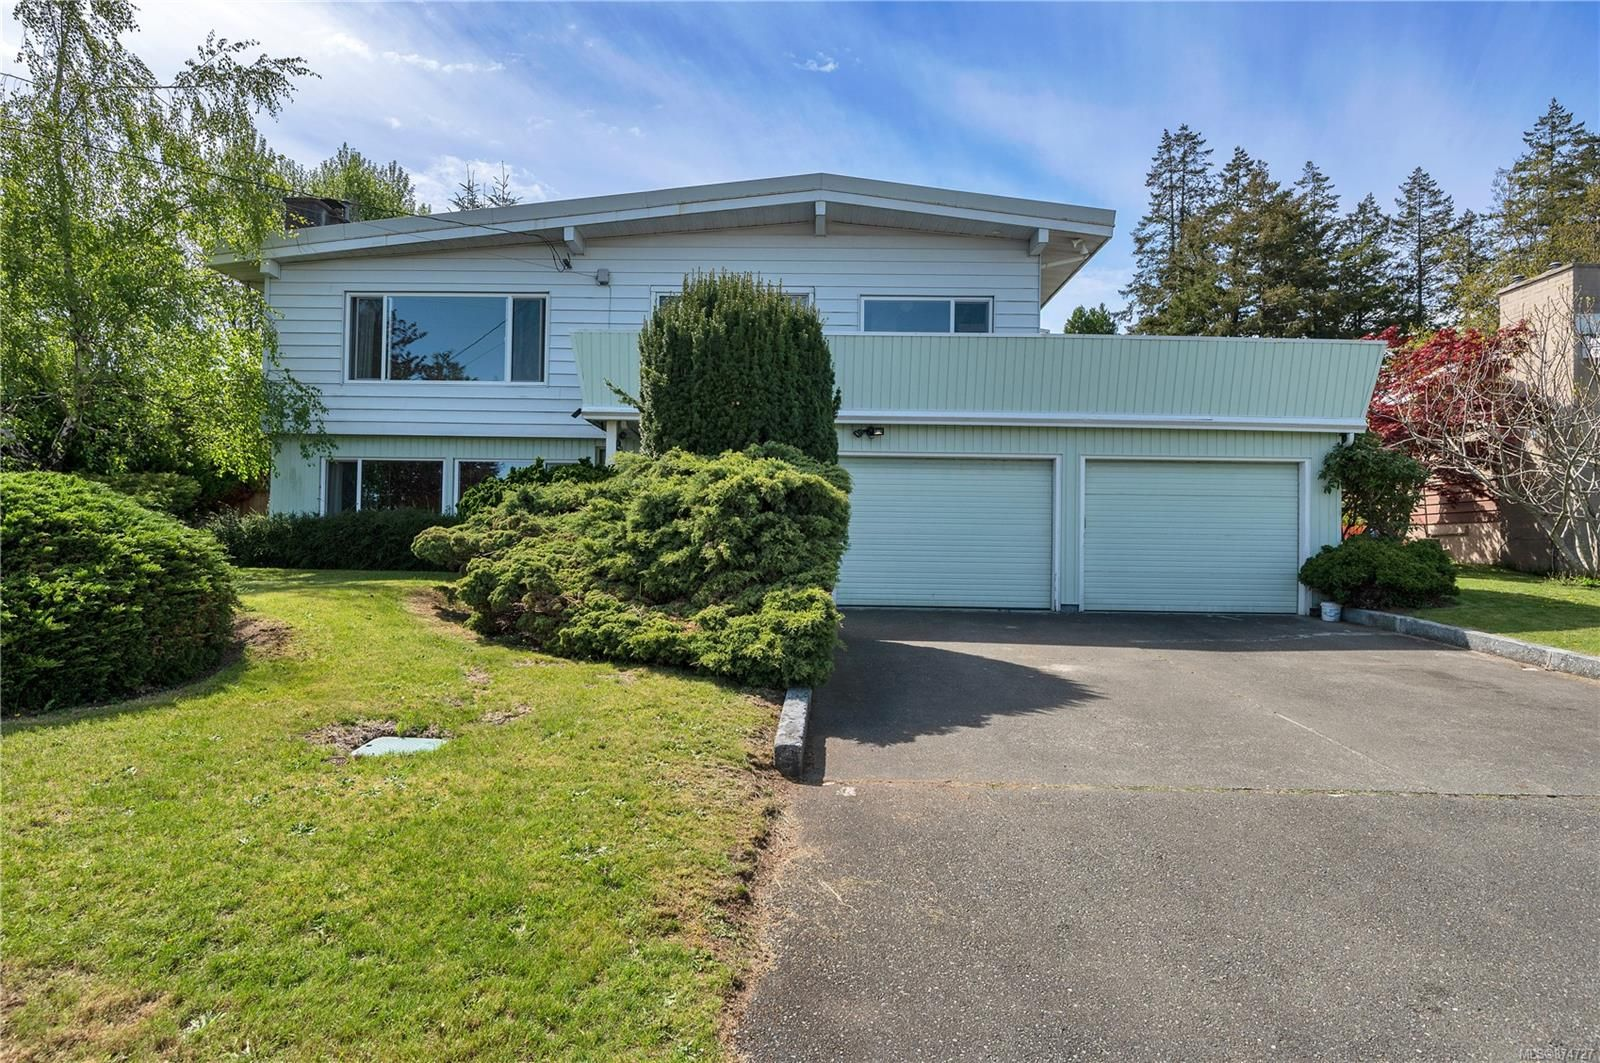 Main Photo: 232 McCarthy St in : CR Campbell River Central House for sale (Campbell River)  : MLS®# 874727